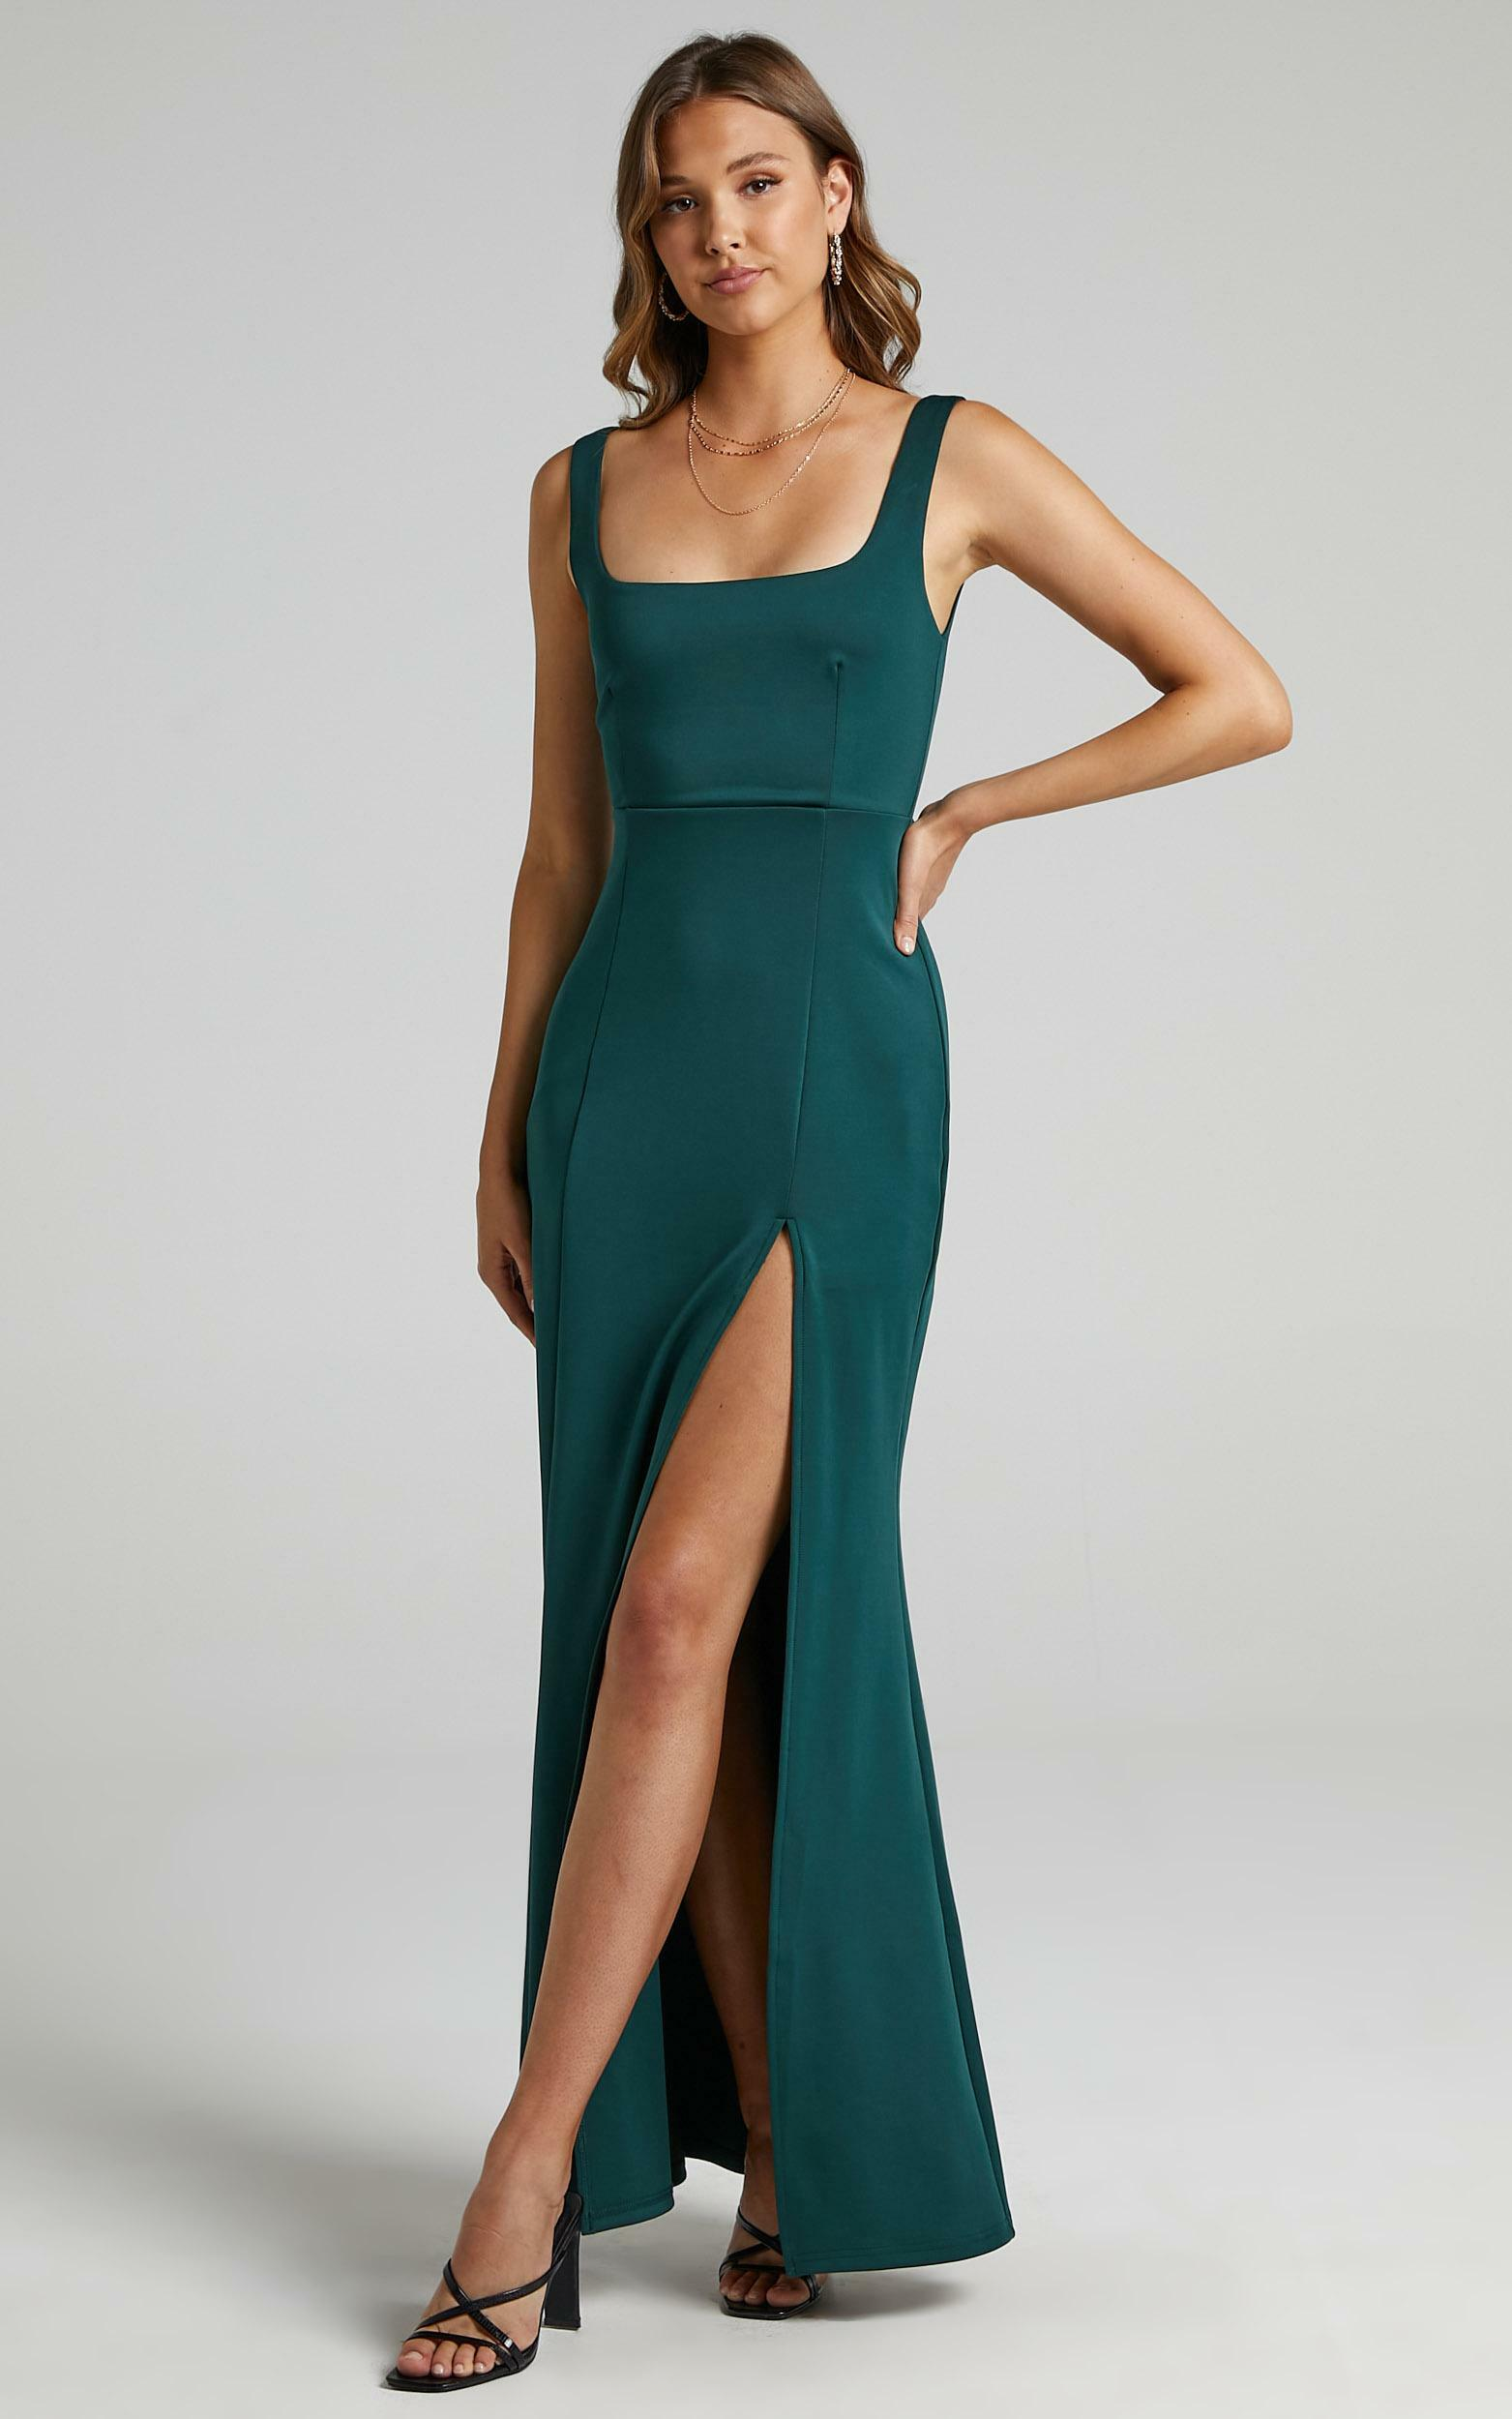 Raquelle Square Neck Thigh Split Maxi Dress in Emerald - 06, GRN3, hi-res image number null